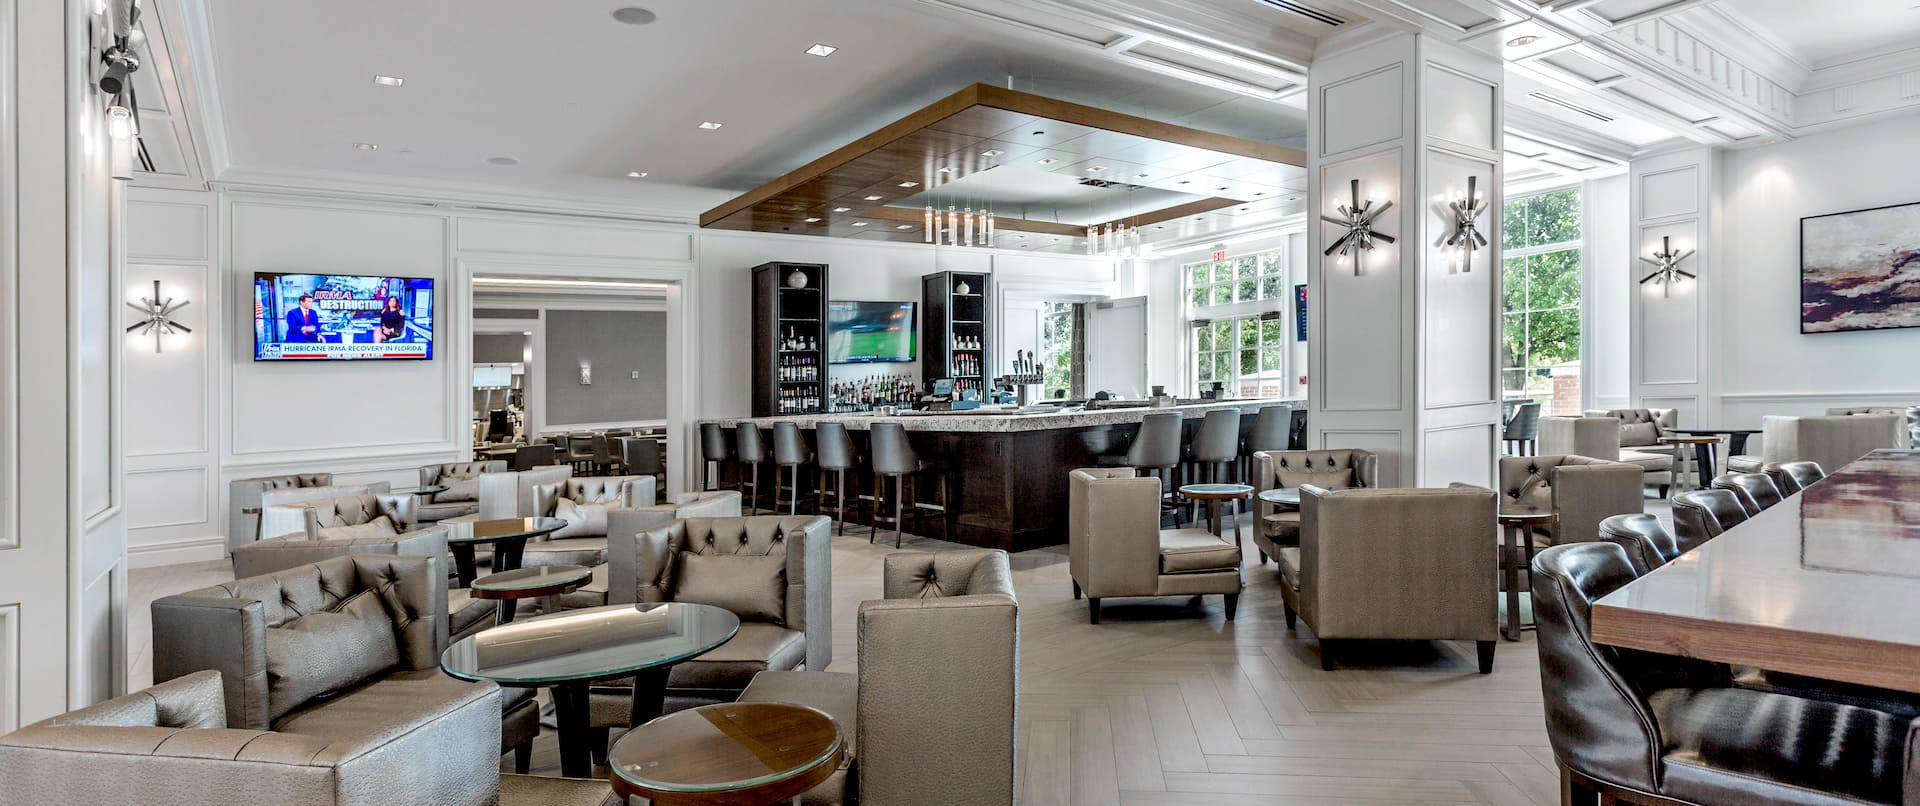 Hotel social space with bar, soft chairs, dining tables and chairs, TV, and floor-to-ceiling windows with outdoor view